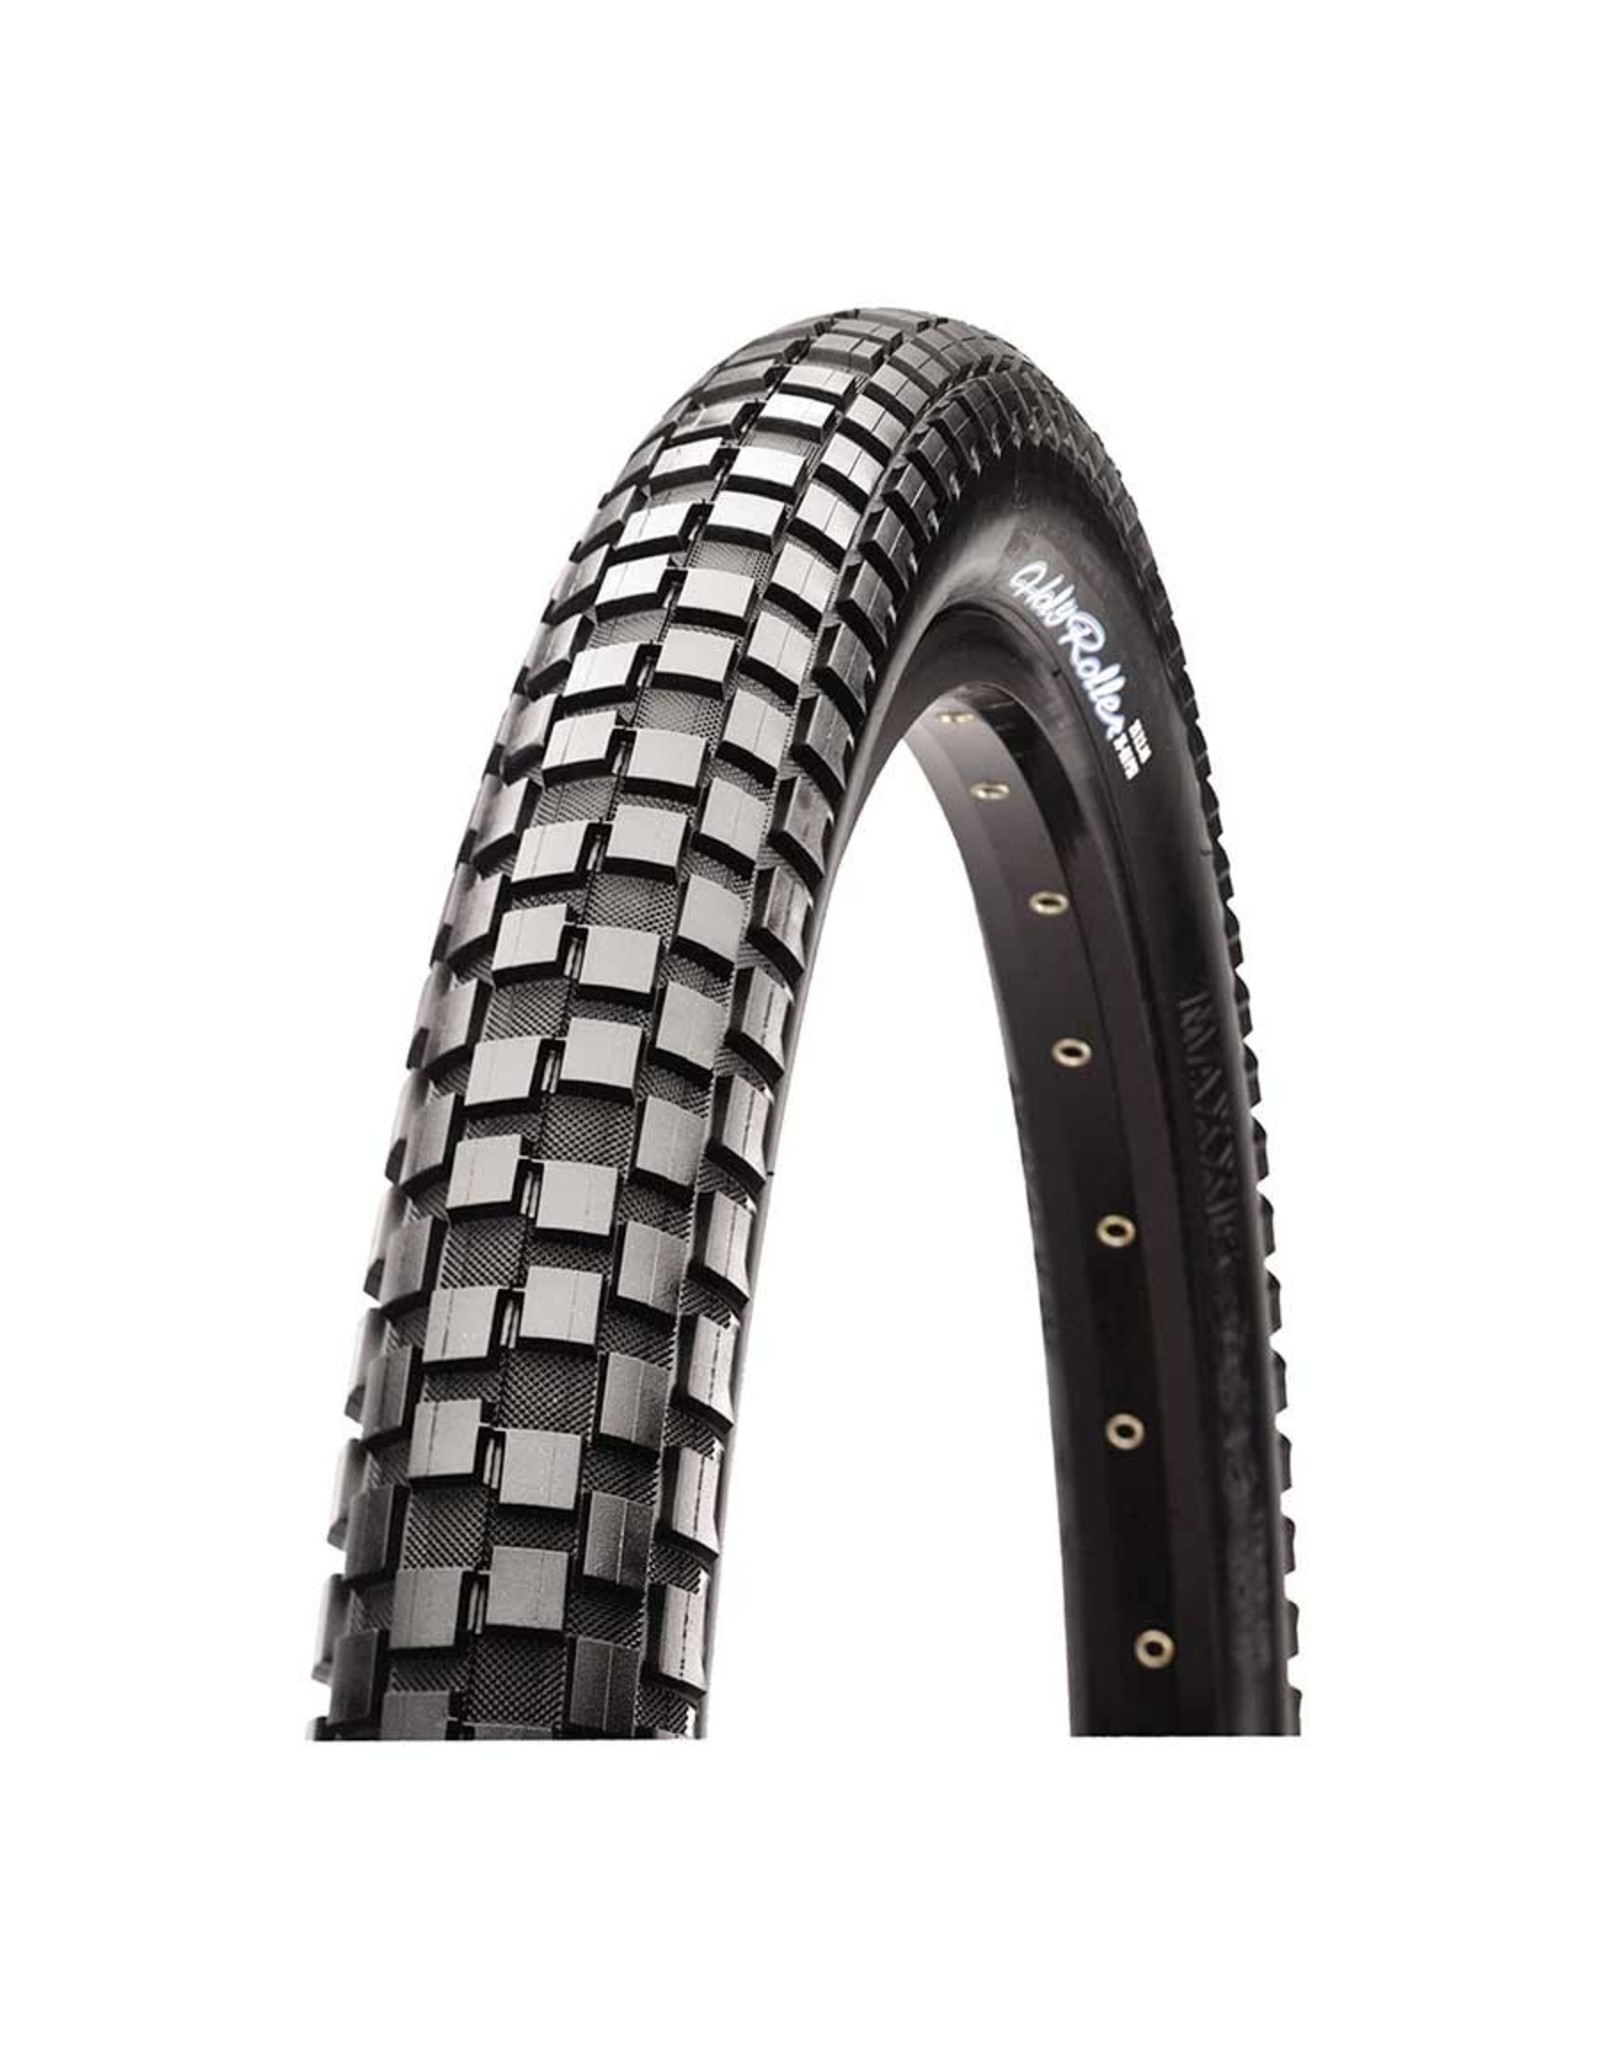 Maxxis Maxxis, Holy Roller, Tire, 26''x2.20, Wire, Clincher, Single, 60TPI, Black